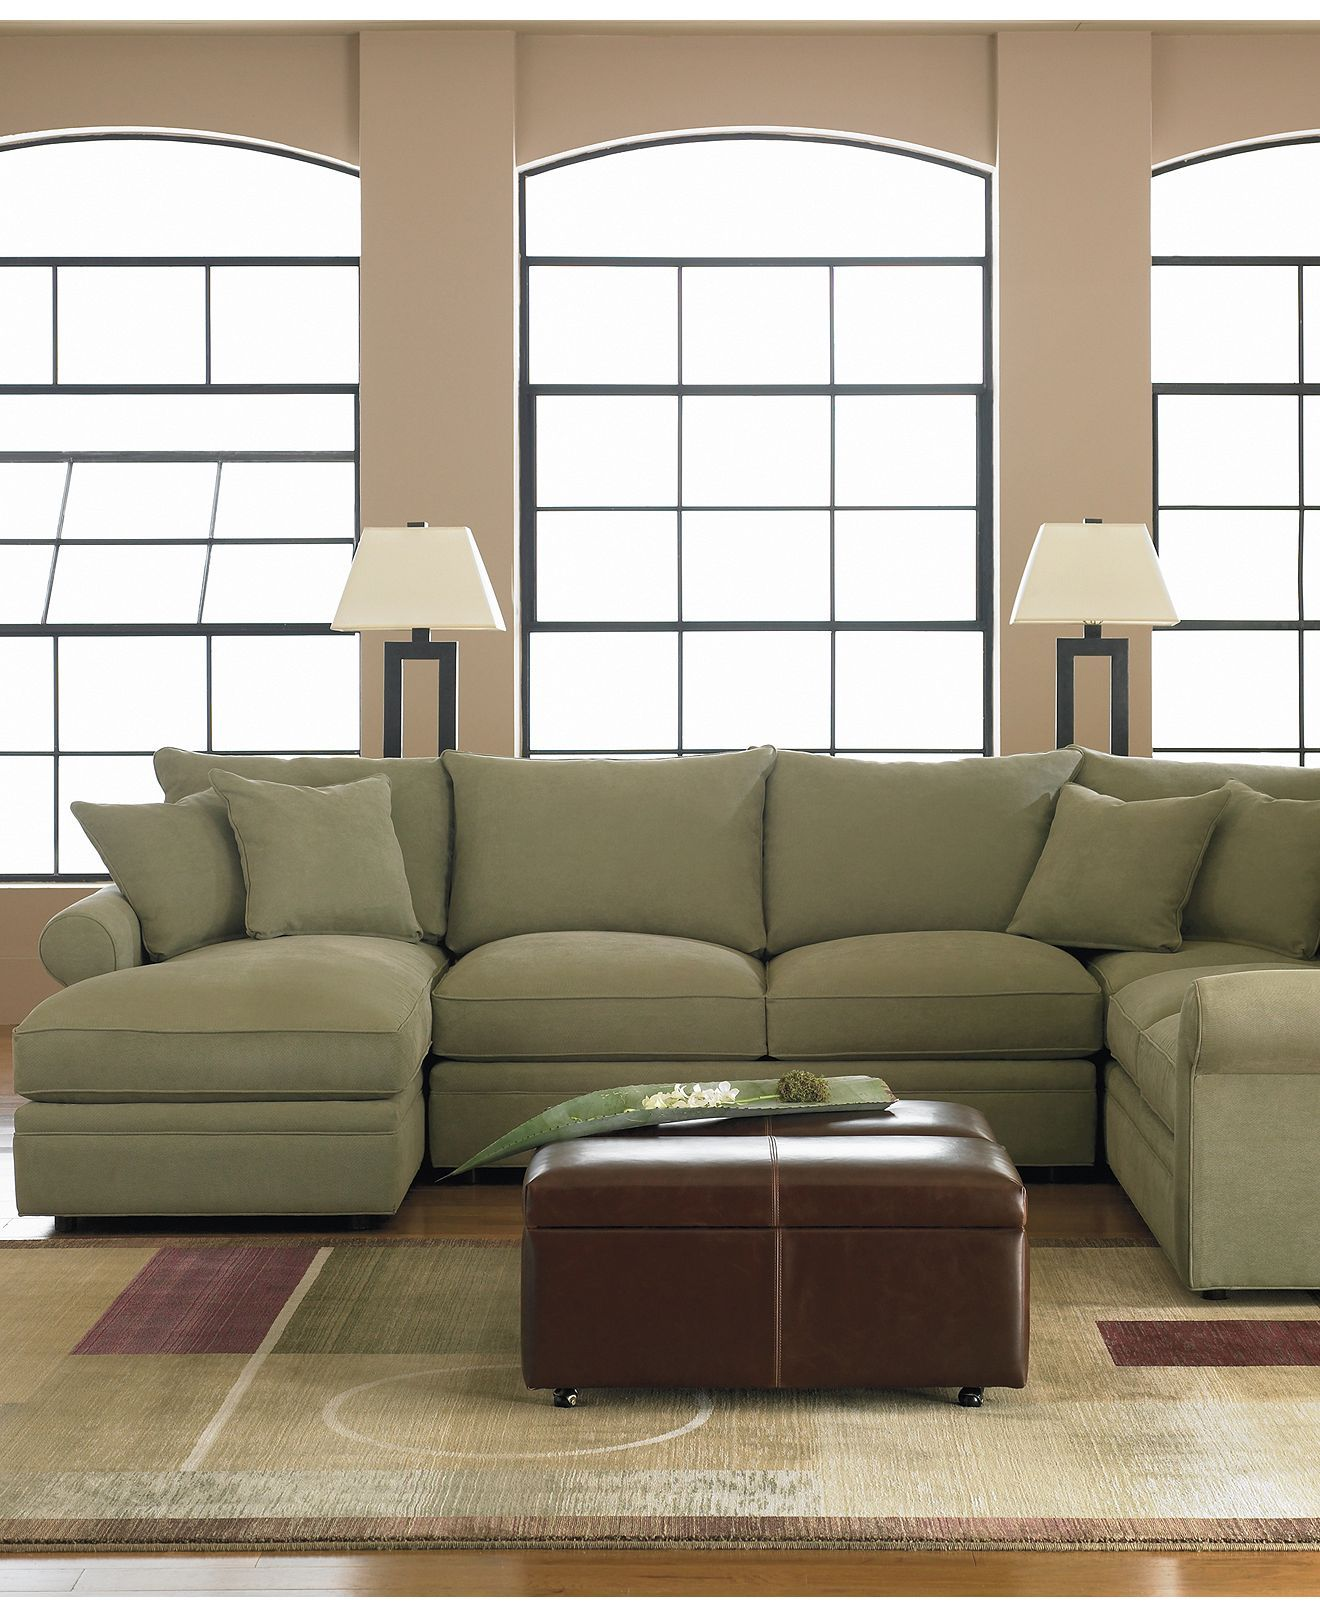 Best Doss Fabric Microfiber Sectional Sofa 4 Piece Left Arm 640 x 480